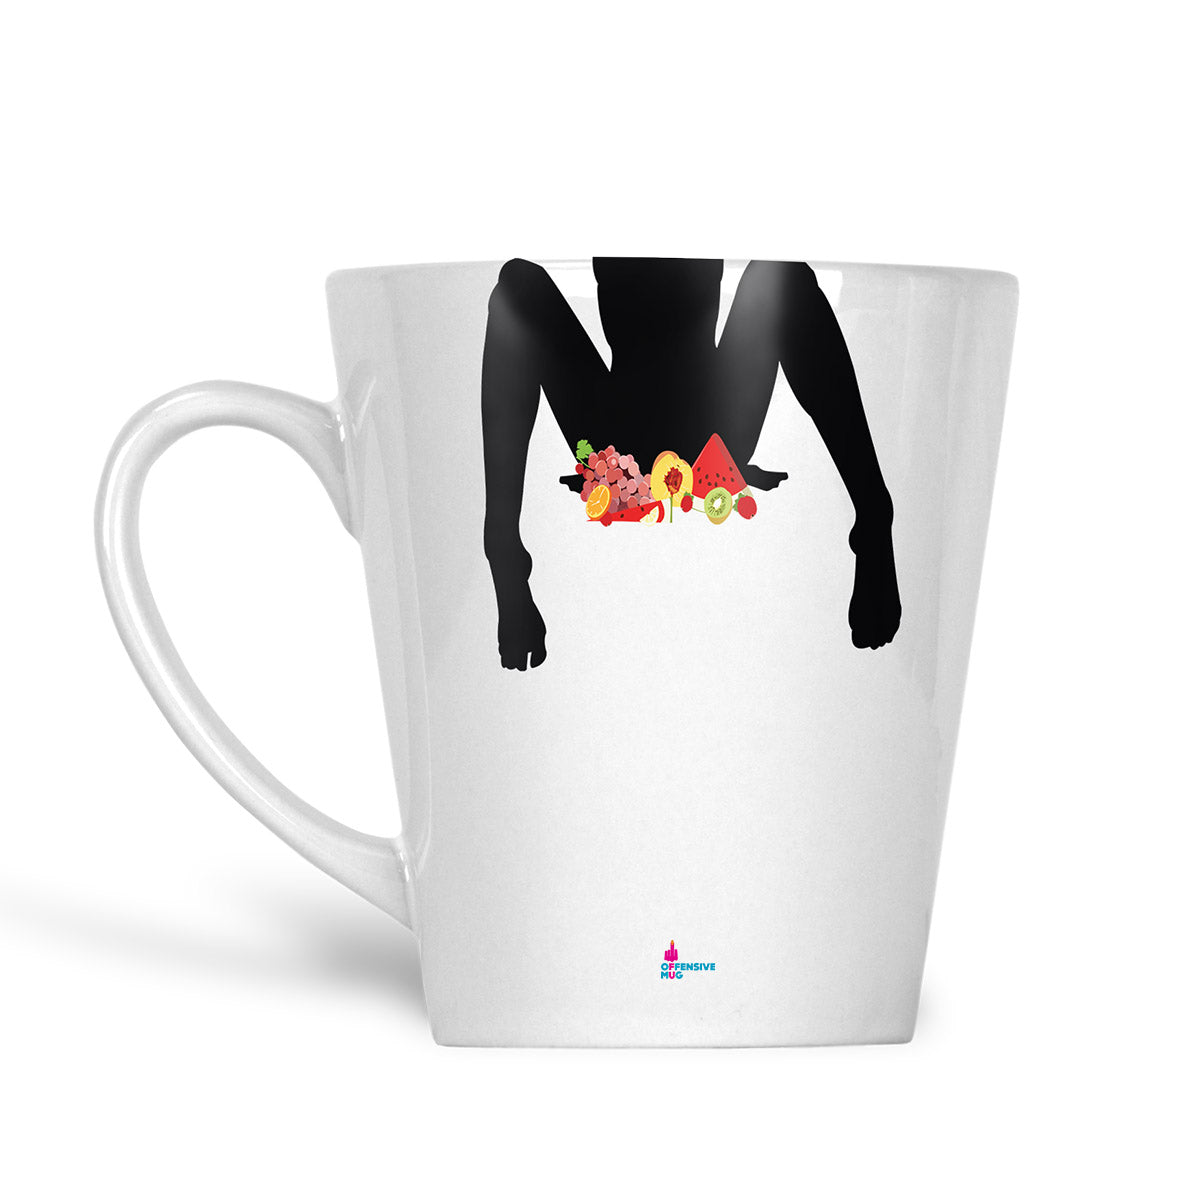 Peaches Latte Mug - Offensive Mug